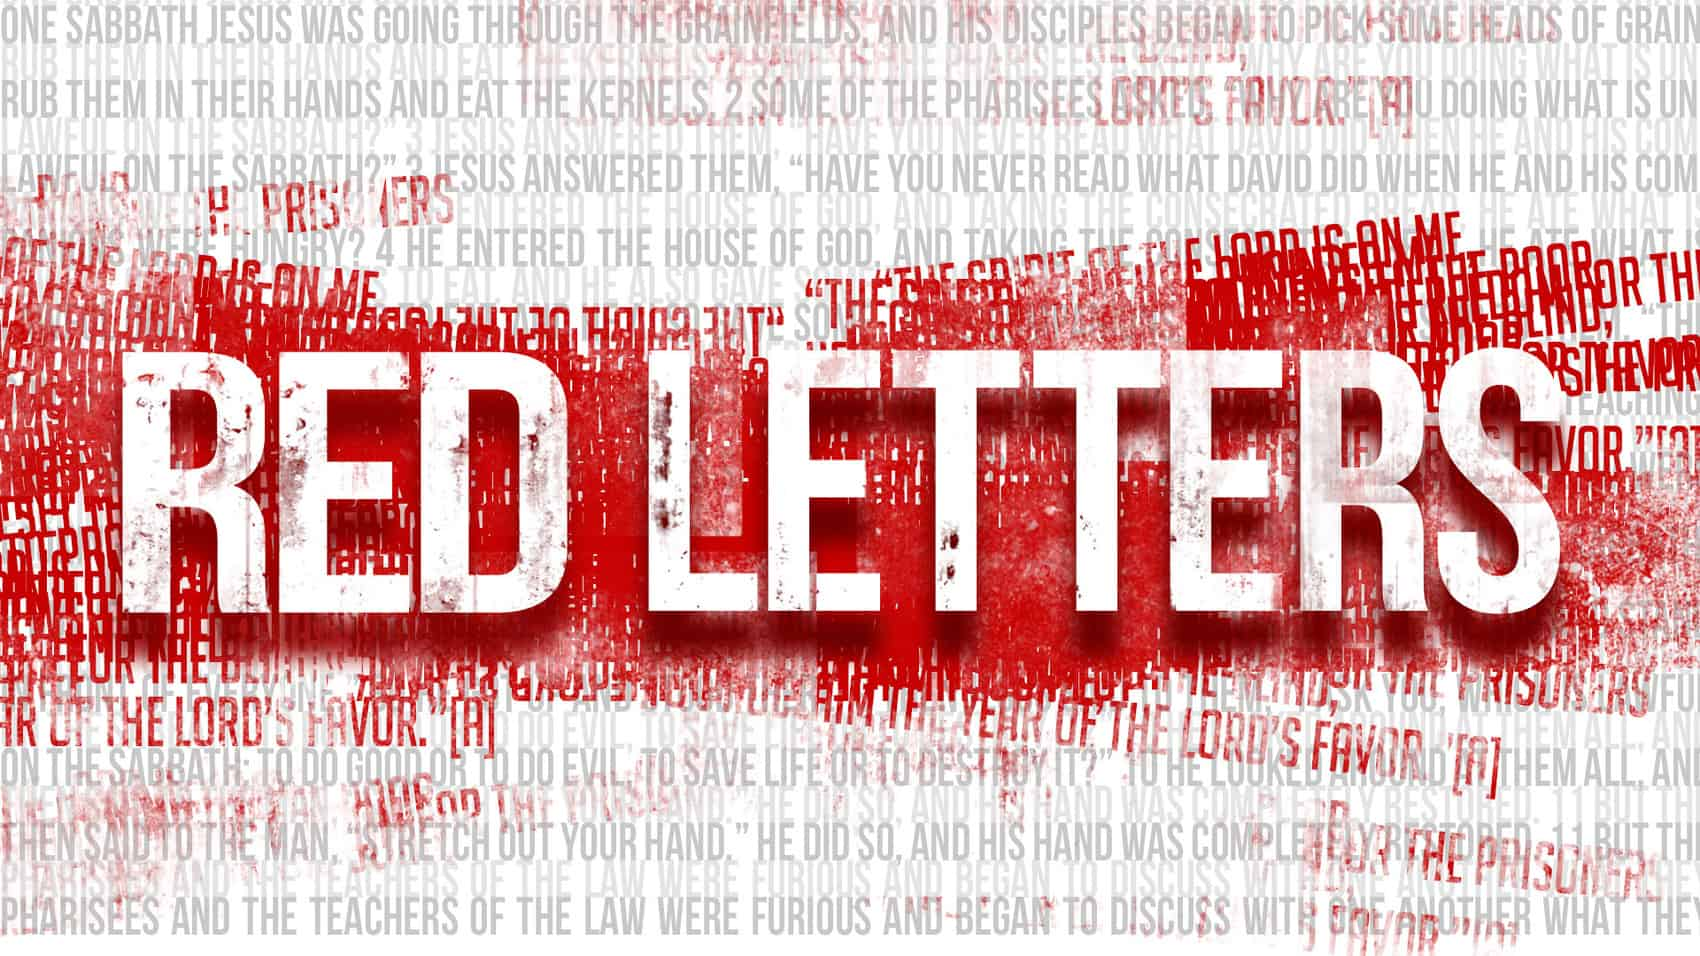 """Red Letters"" Part 6: Matthew 7:21-23"